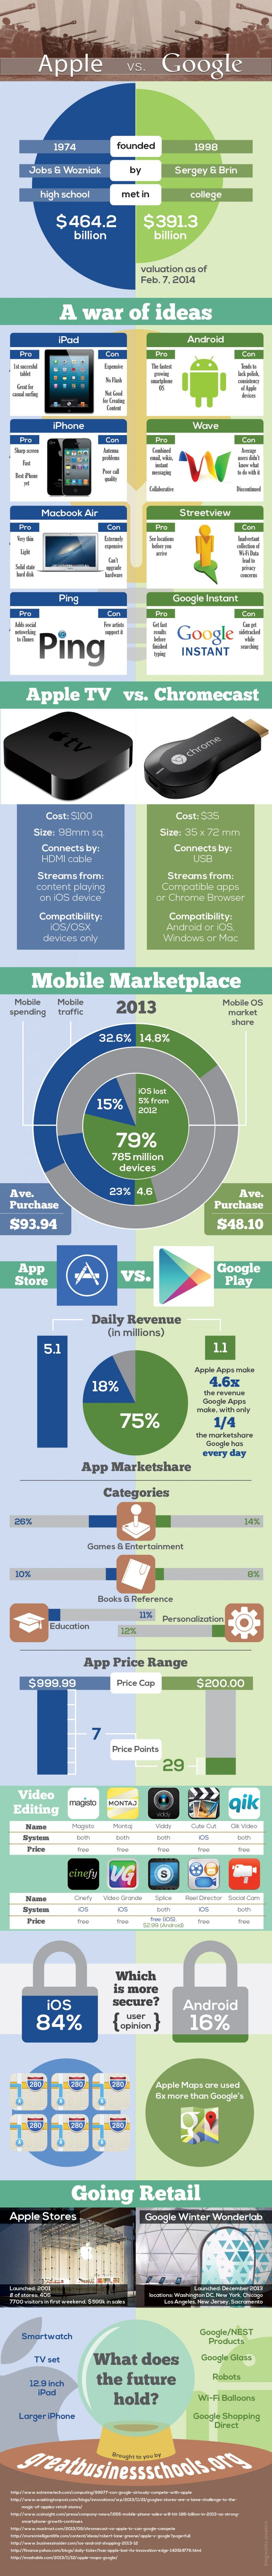 GOOGLE vs. APPLE Infographic. Aka - Google sucks and will only ever have one thing right.. Google search.